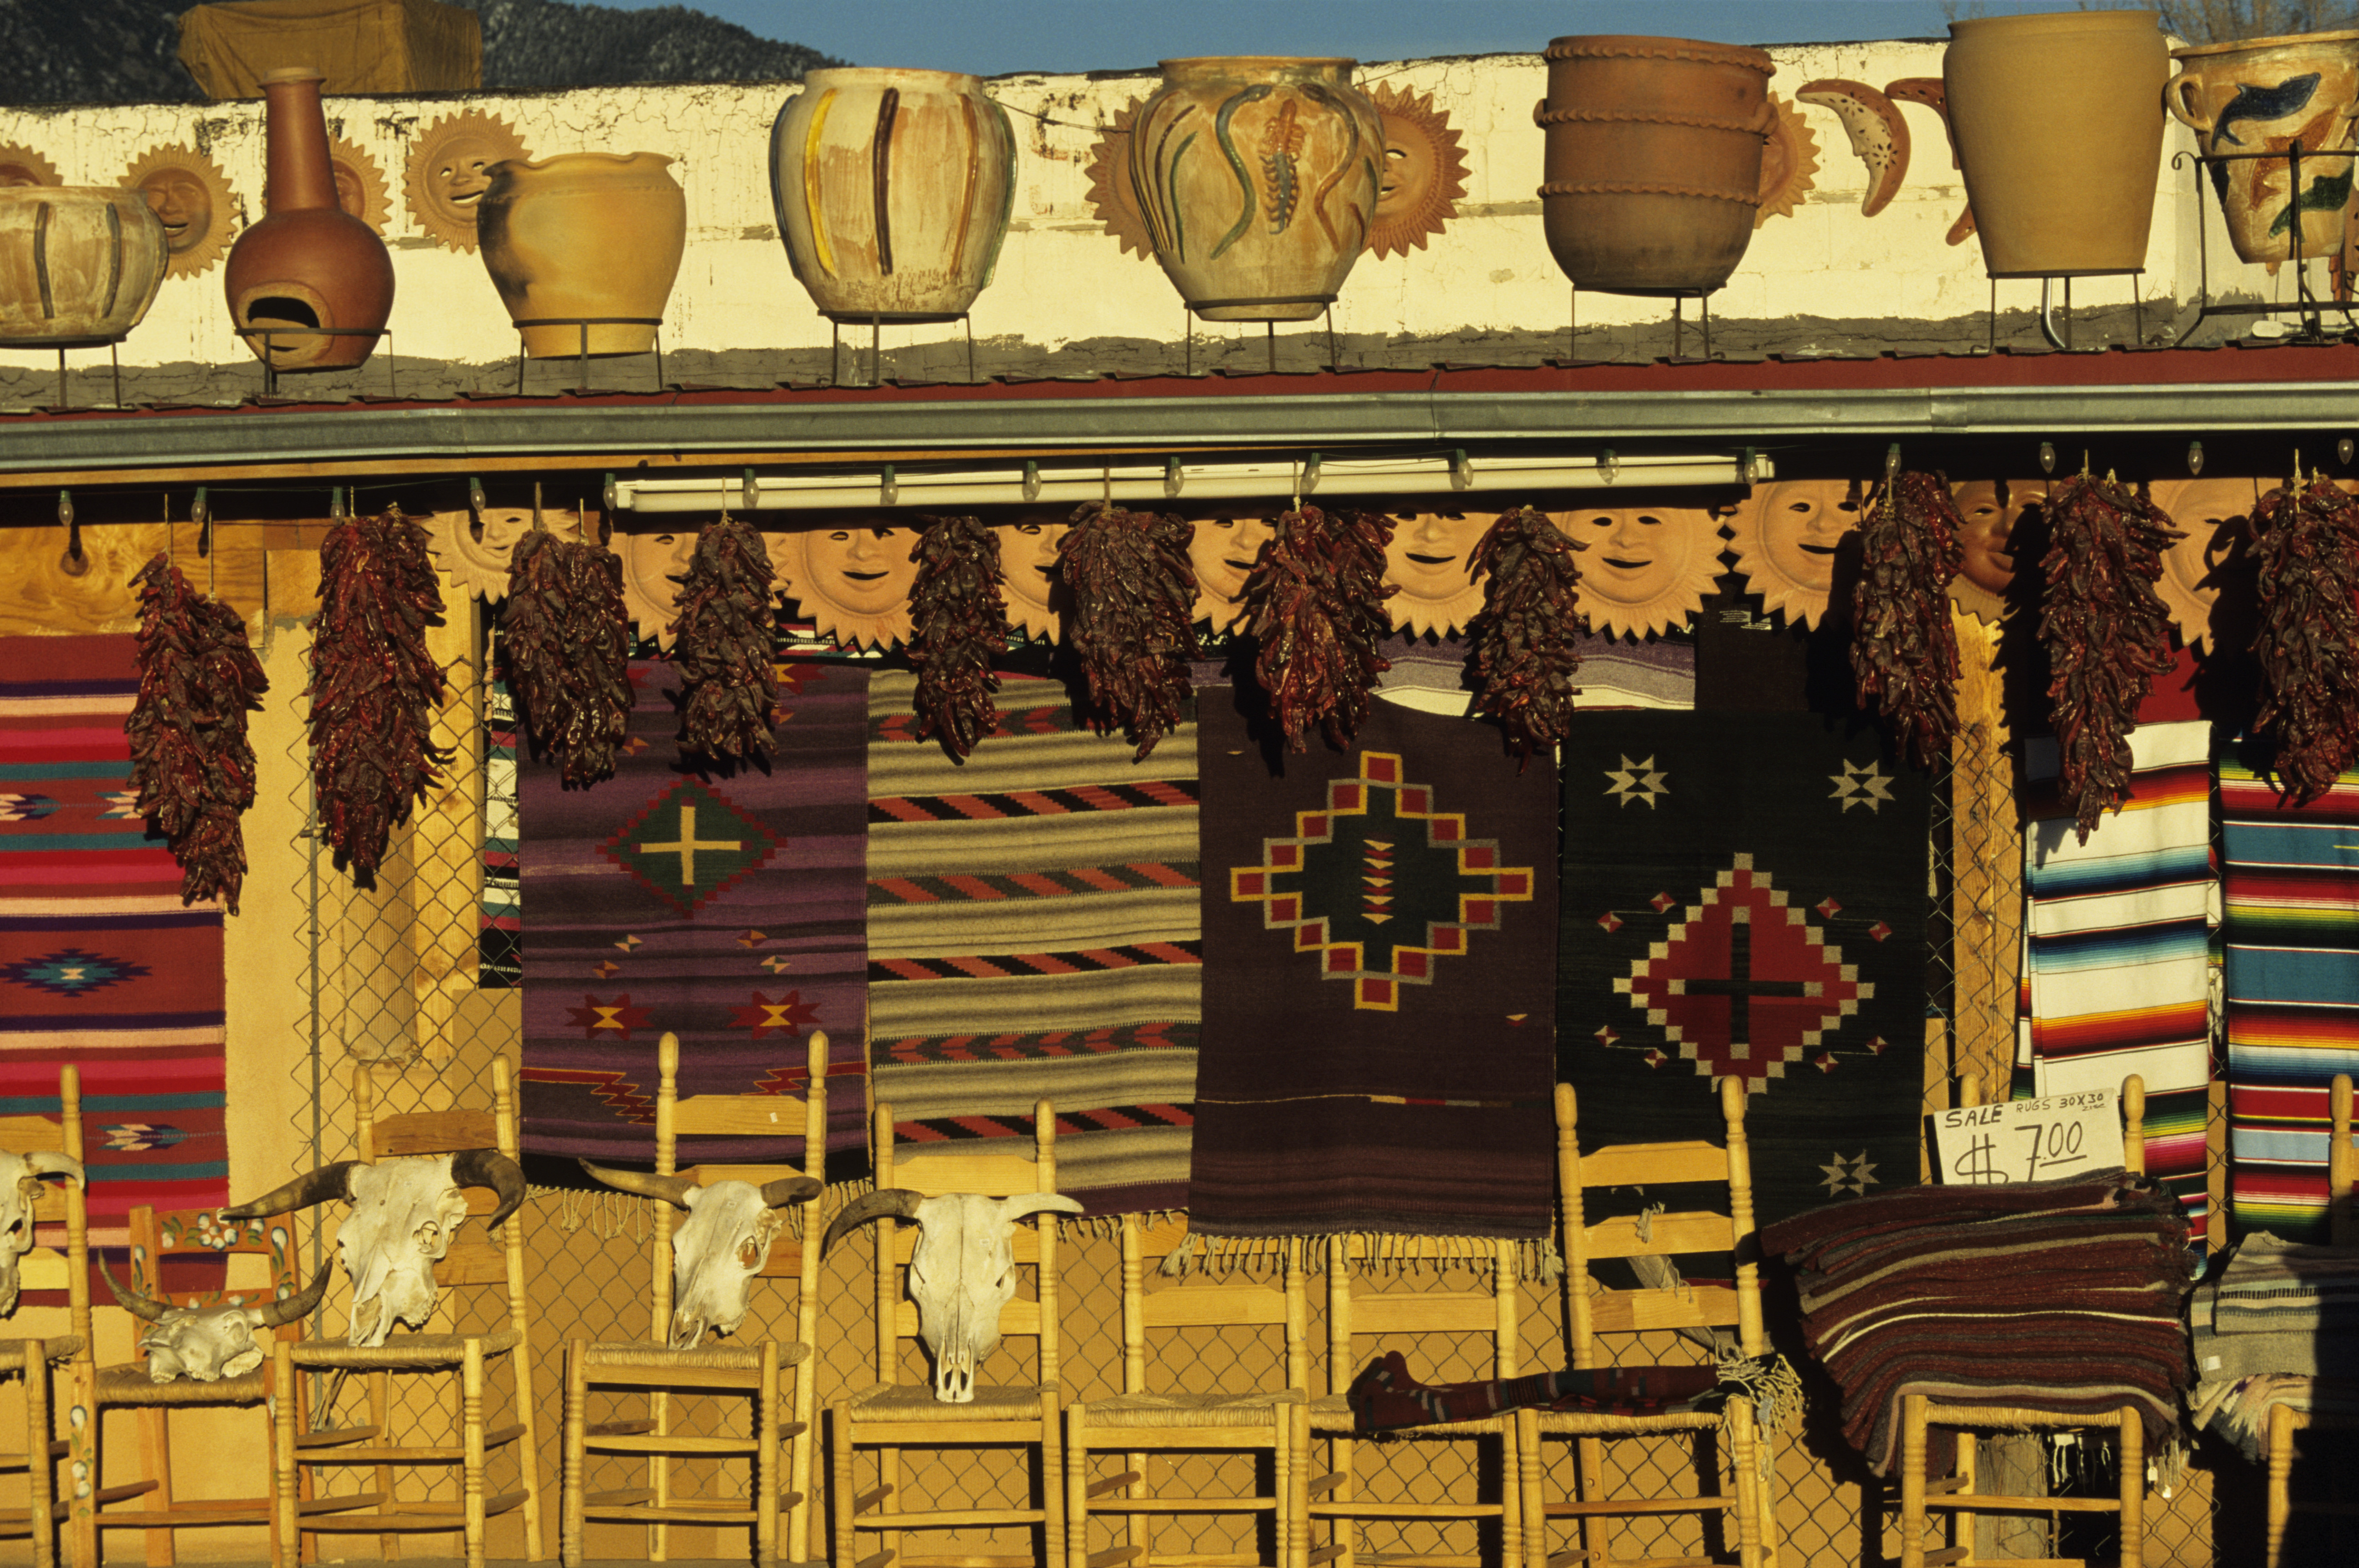 A craft stall, Taos, New Mexico